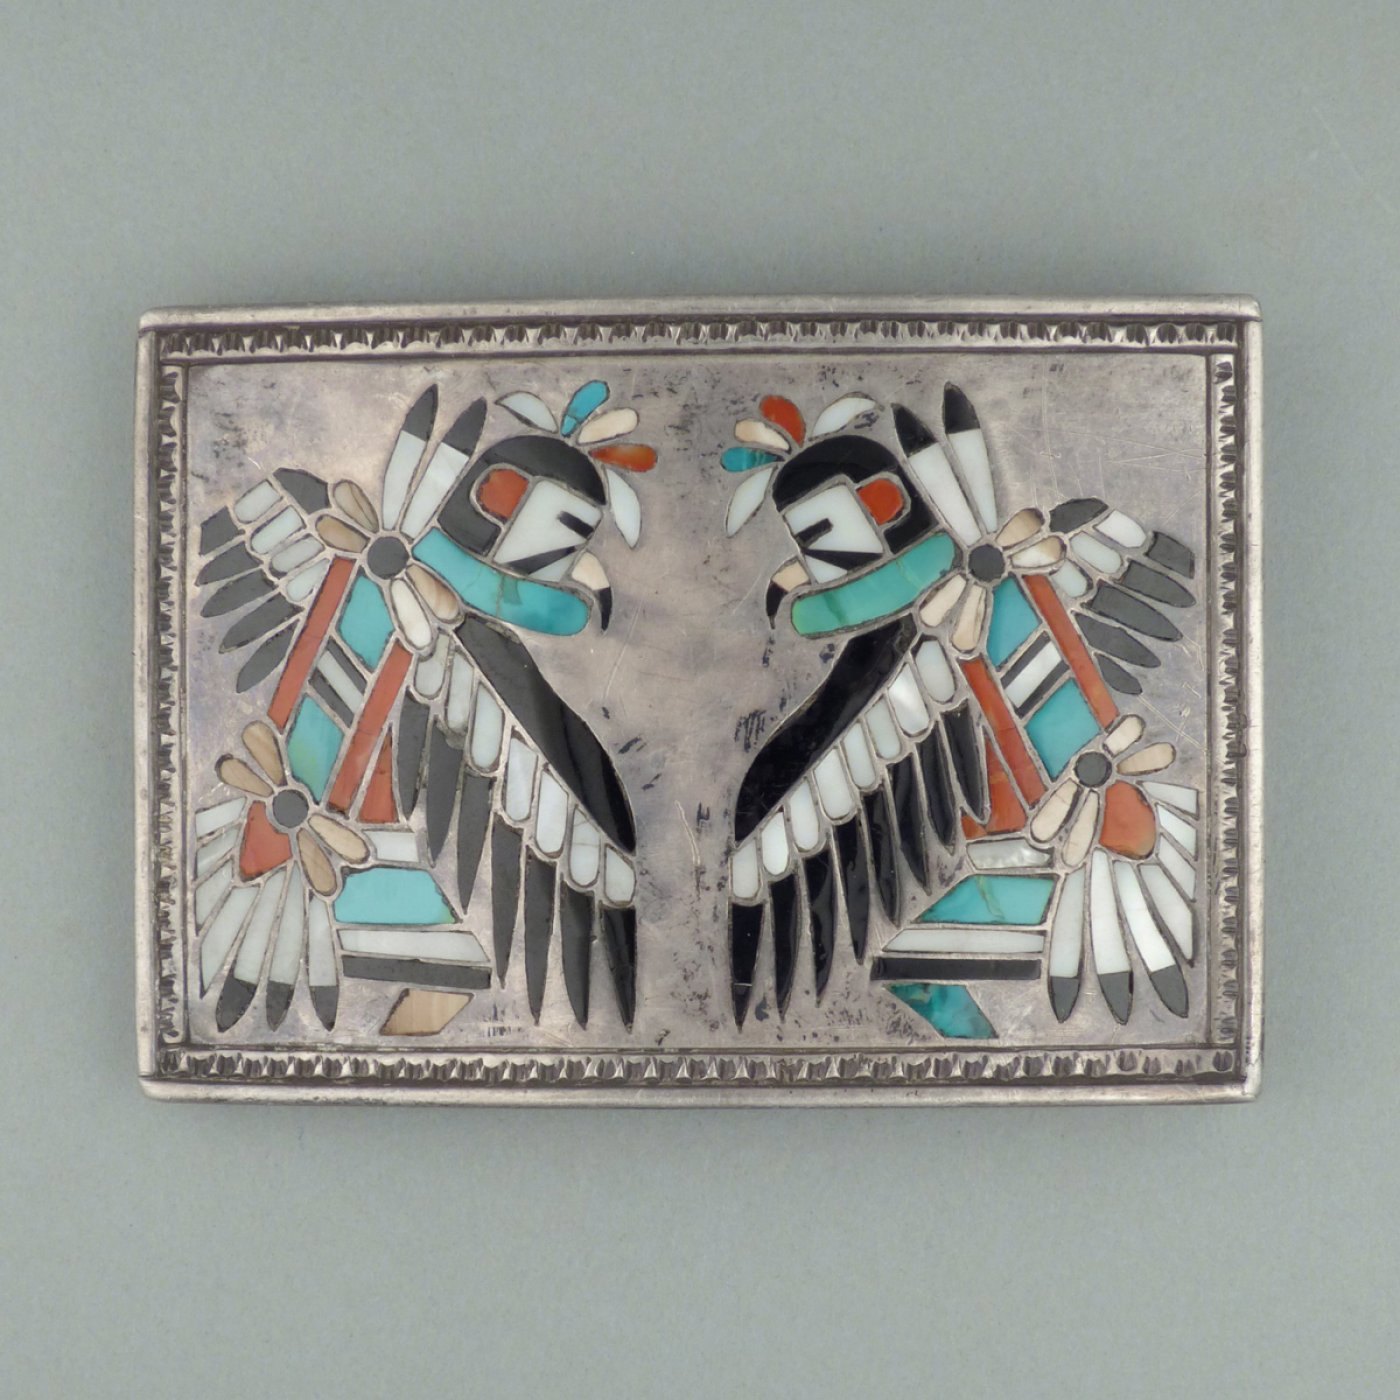 Zuni Silver Belt Buckle With Inlay By Frank Vacit C 1950